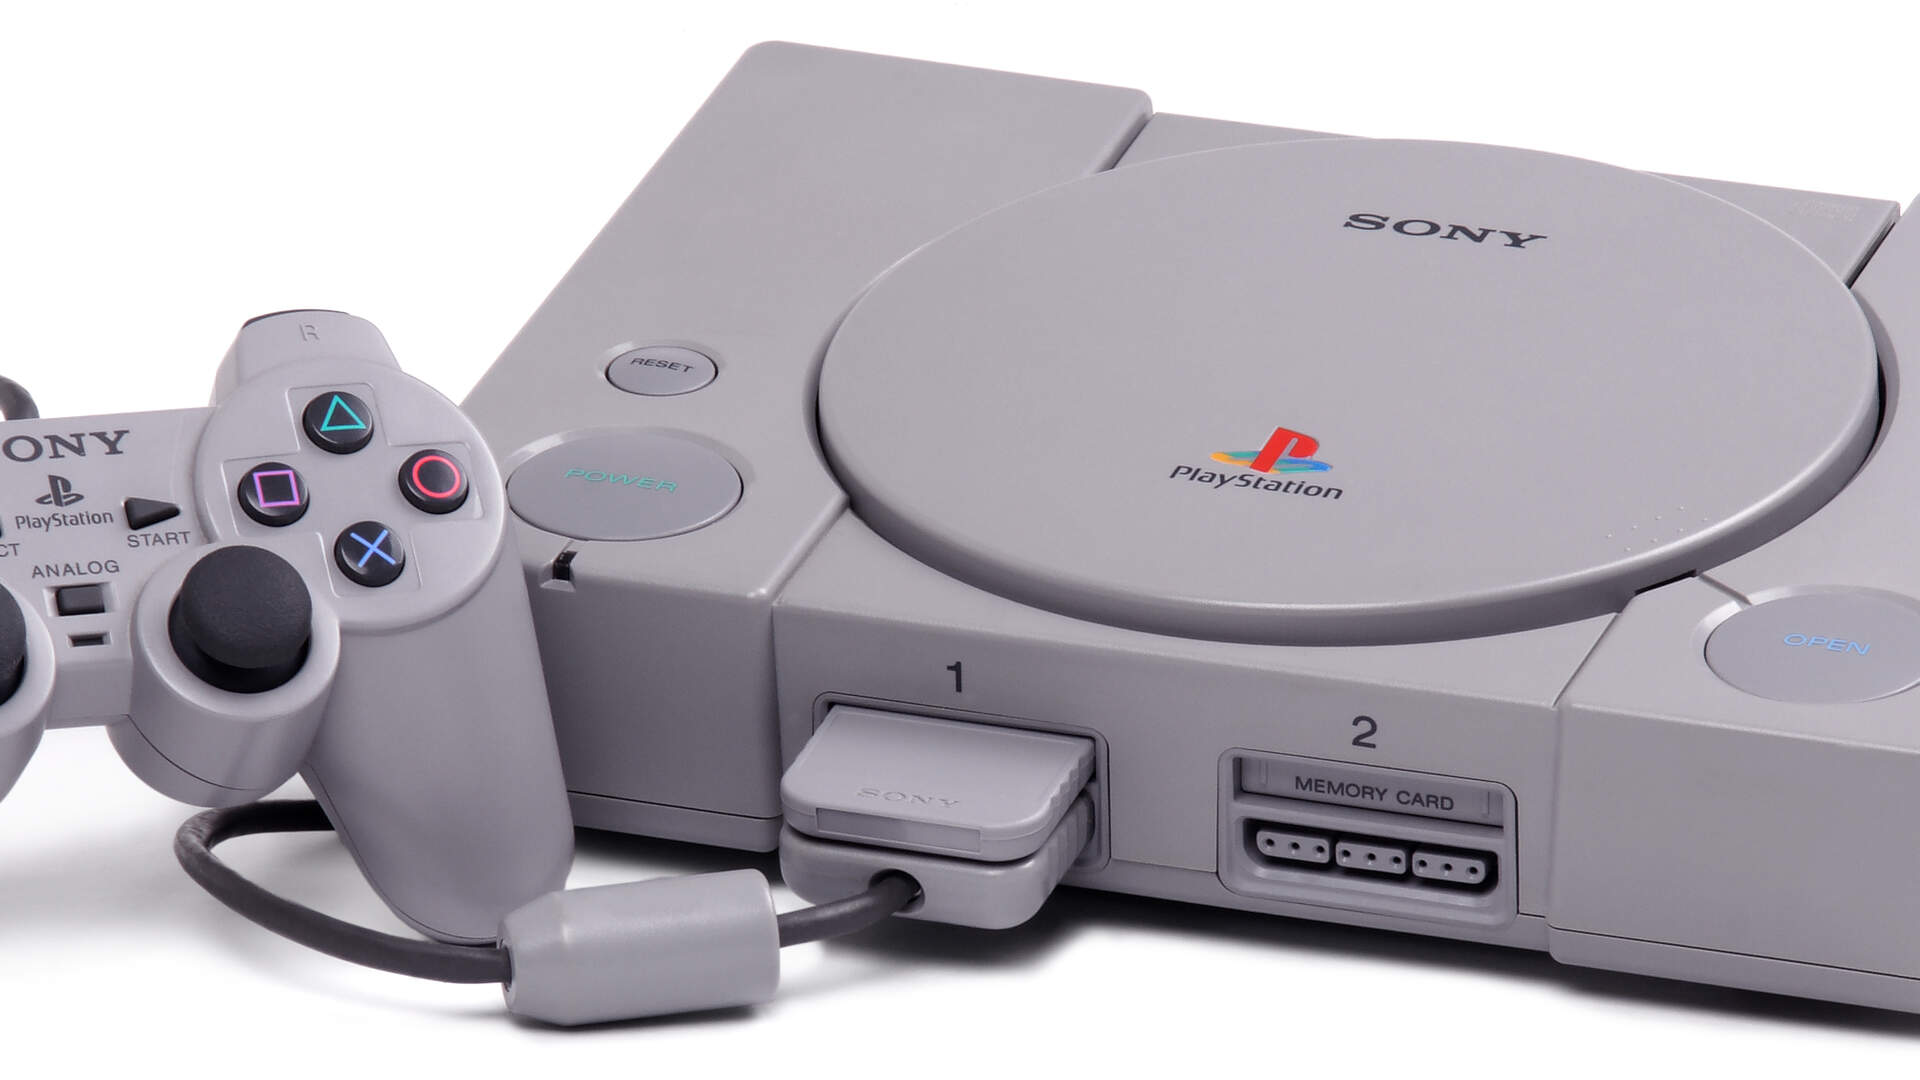 The PlayStation Classic Invites a Renewed Examination of the PS1's RPG Legacy